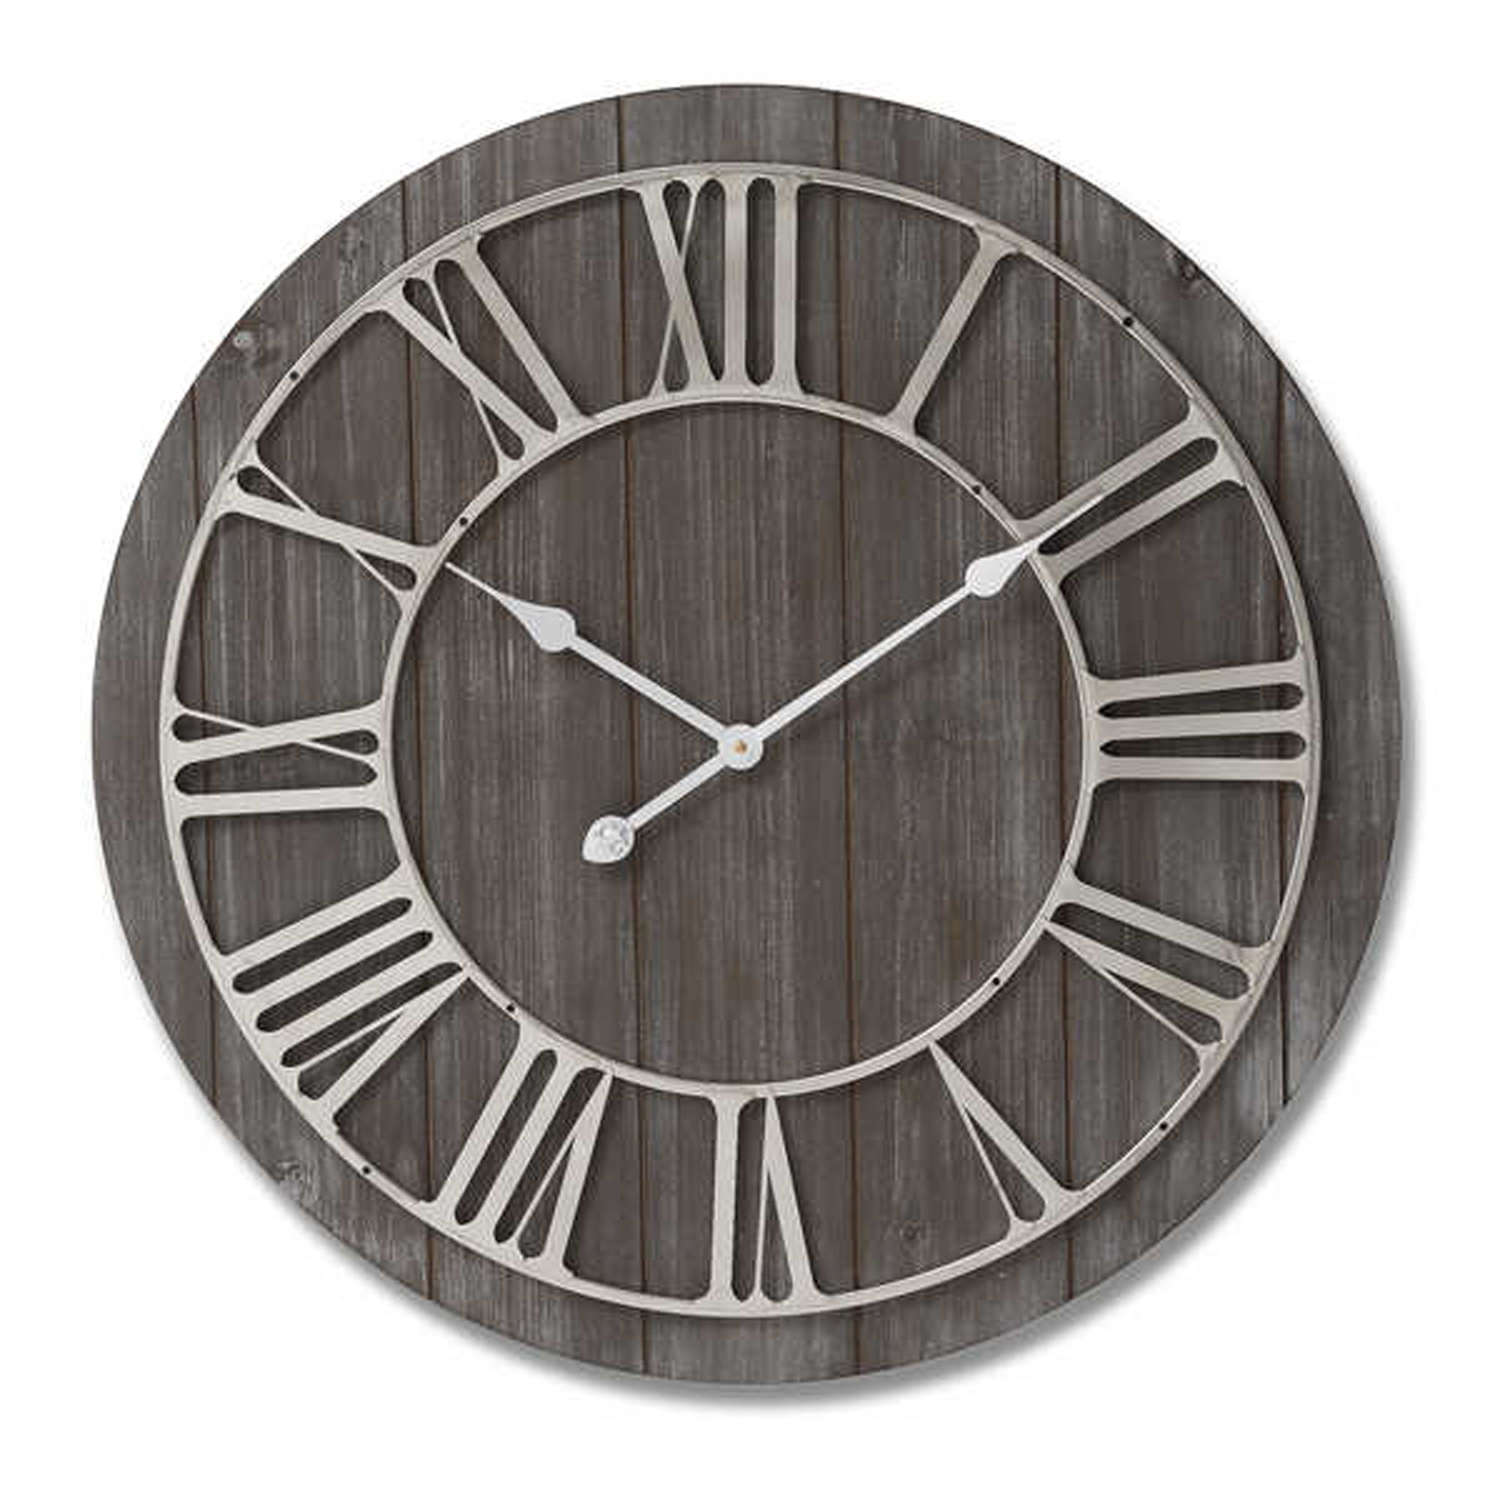 Wooden clock with nickel detail